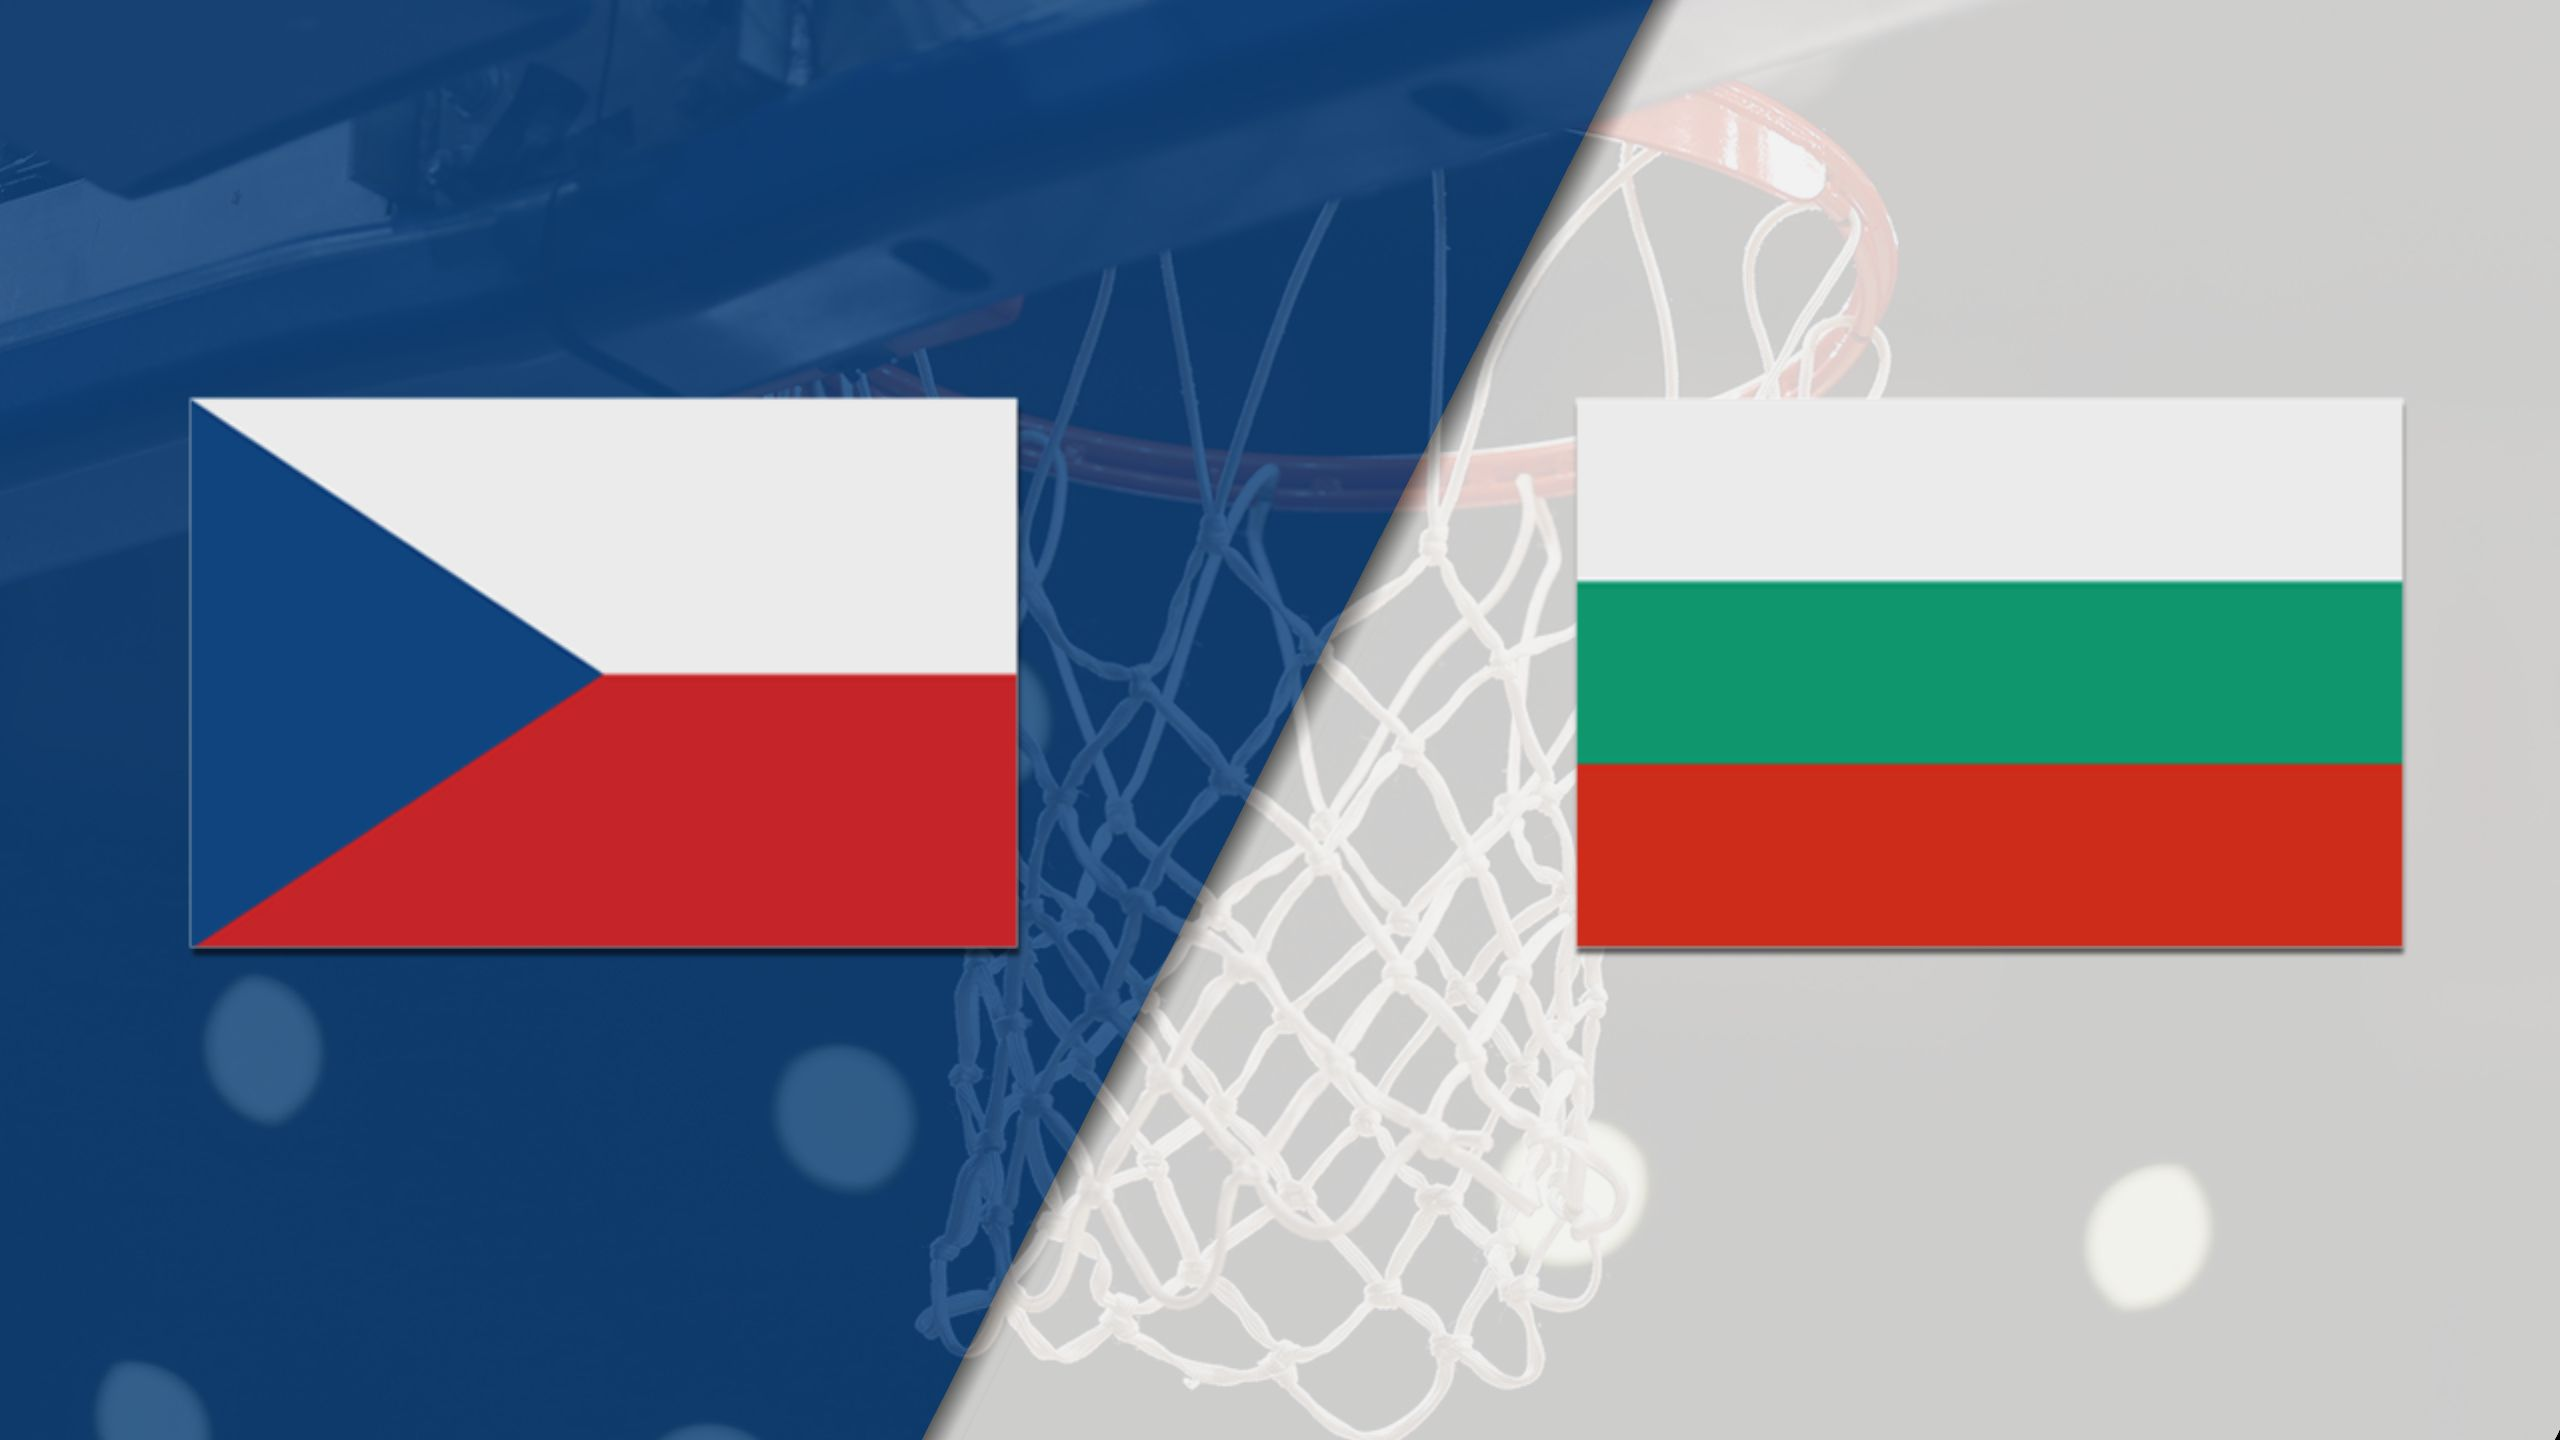 Czech Republic vs. Bulgaria (FIBA World Cup 2019 Qualifier)